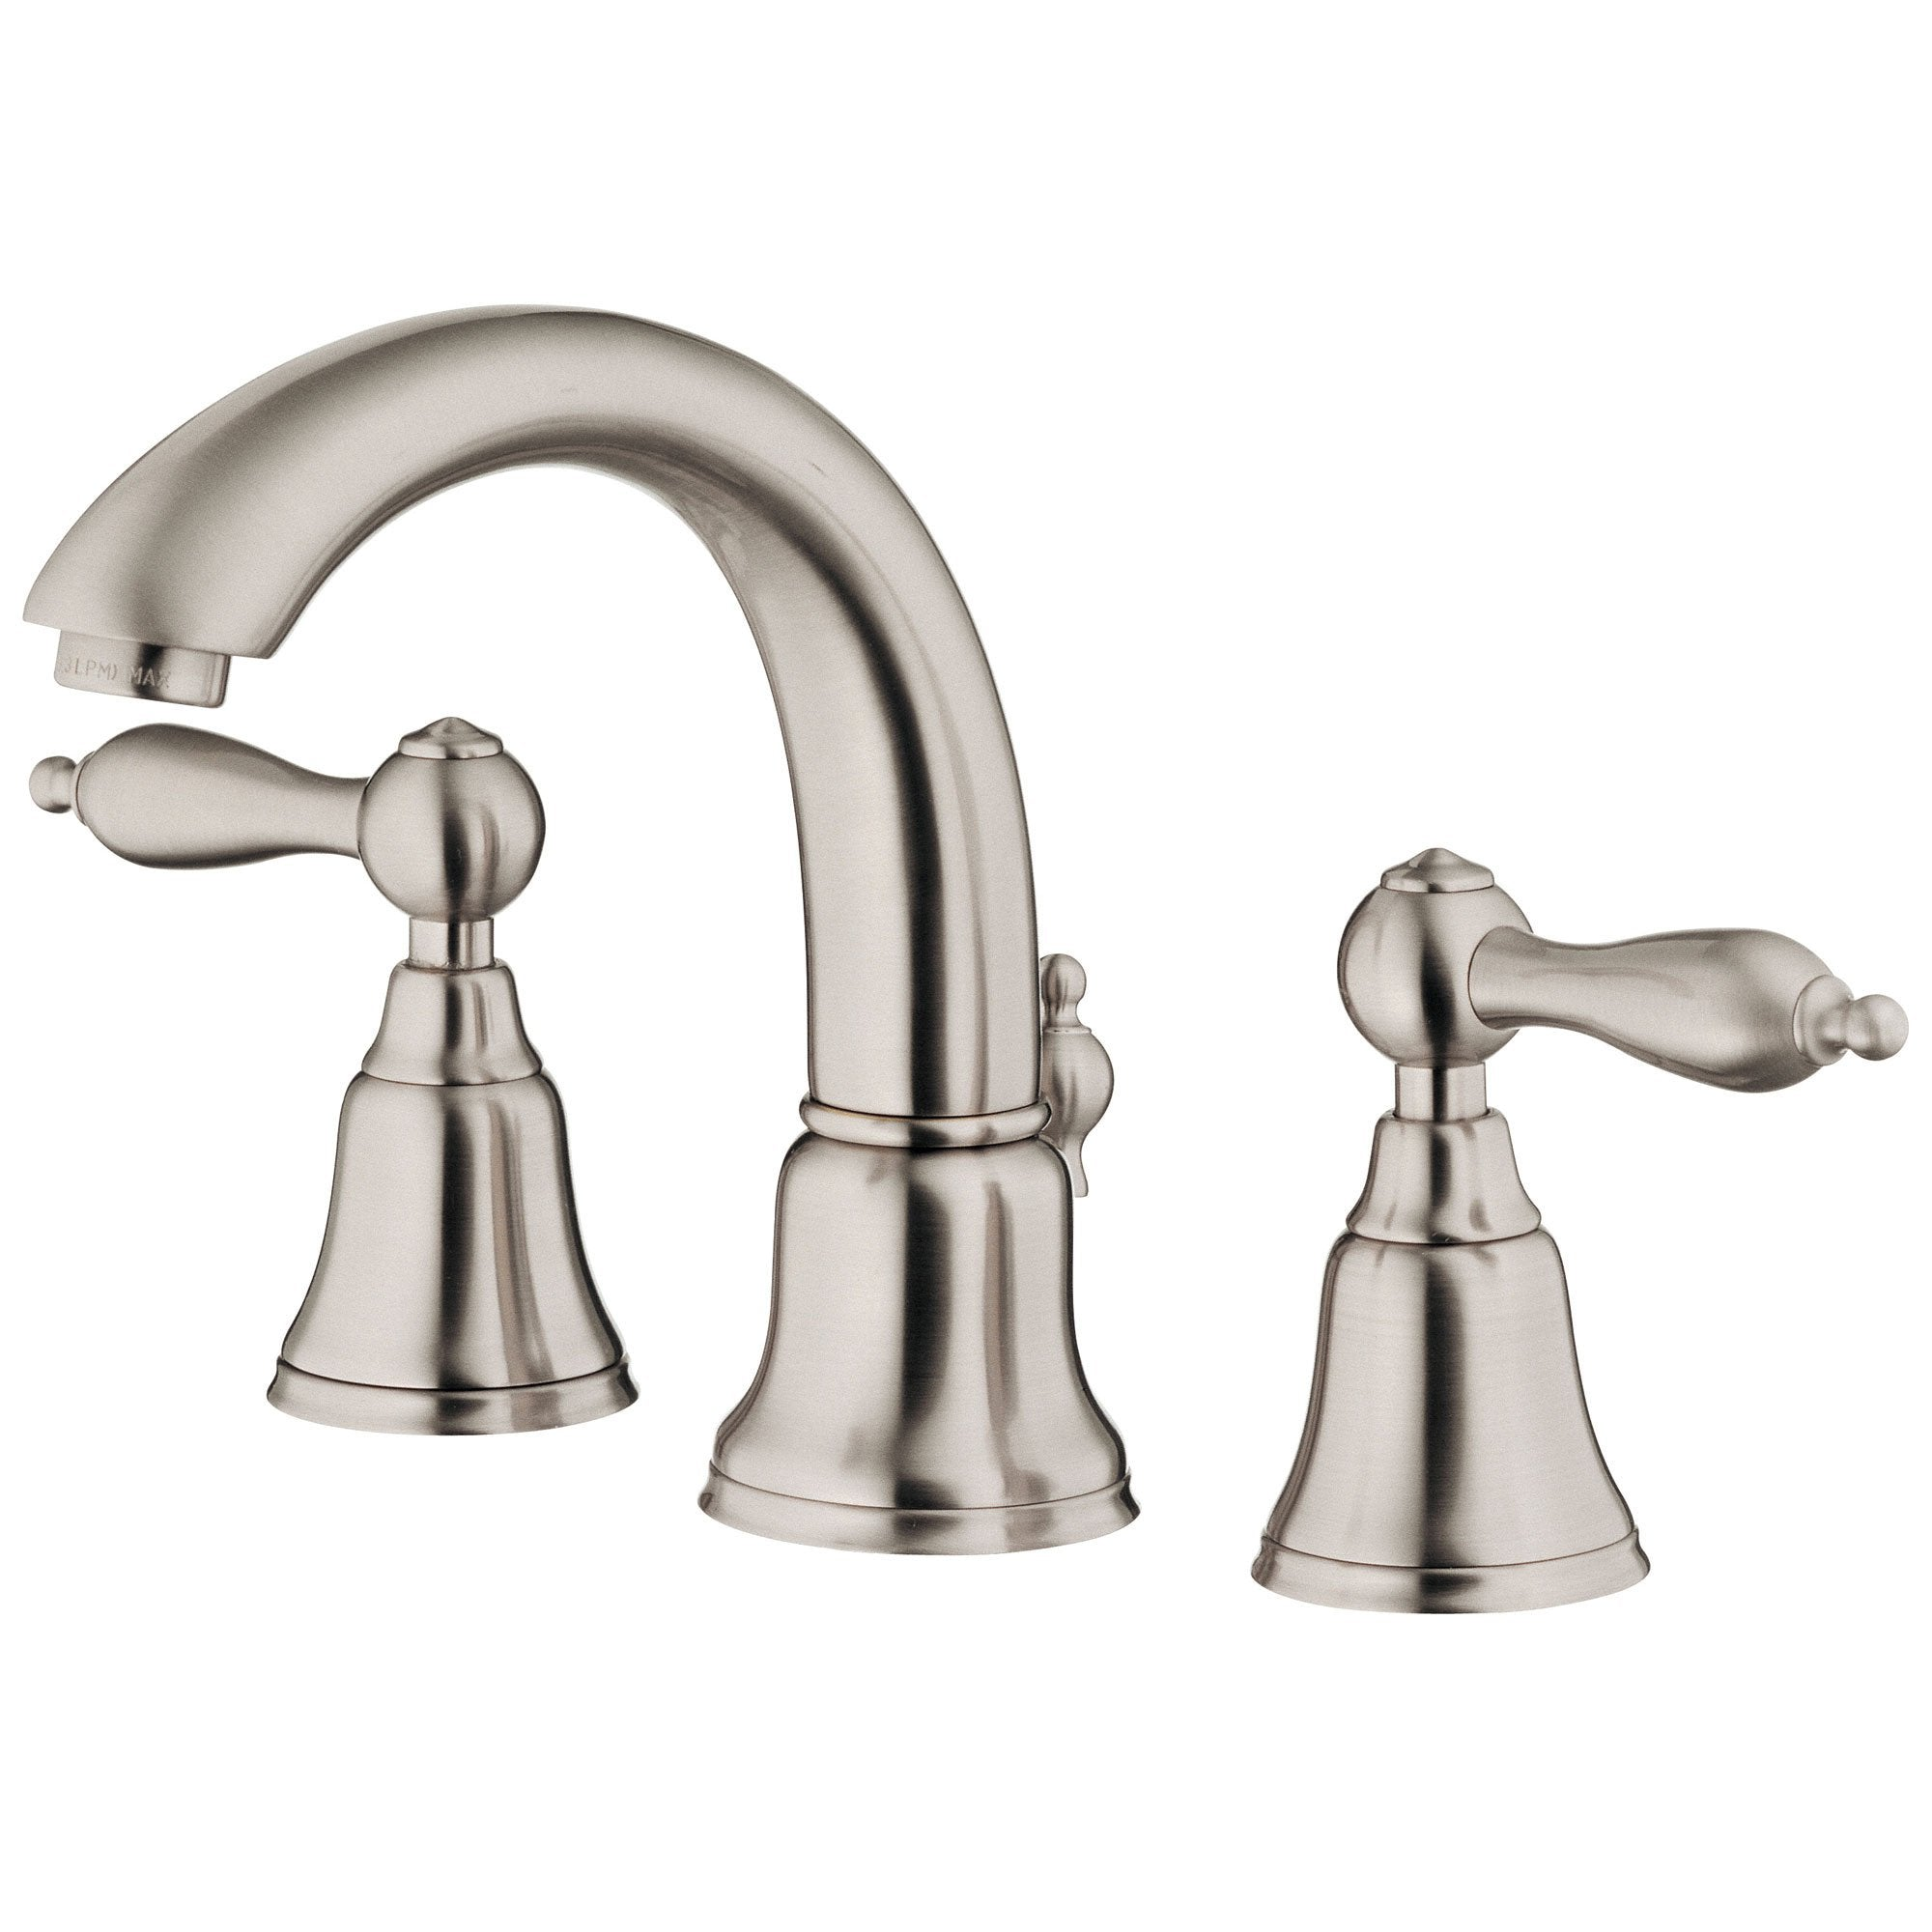 Danze Fairmont Brushed Nickel 2 Handle Widespread Bathroom Faucet w/Pop-up Drain